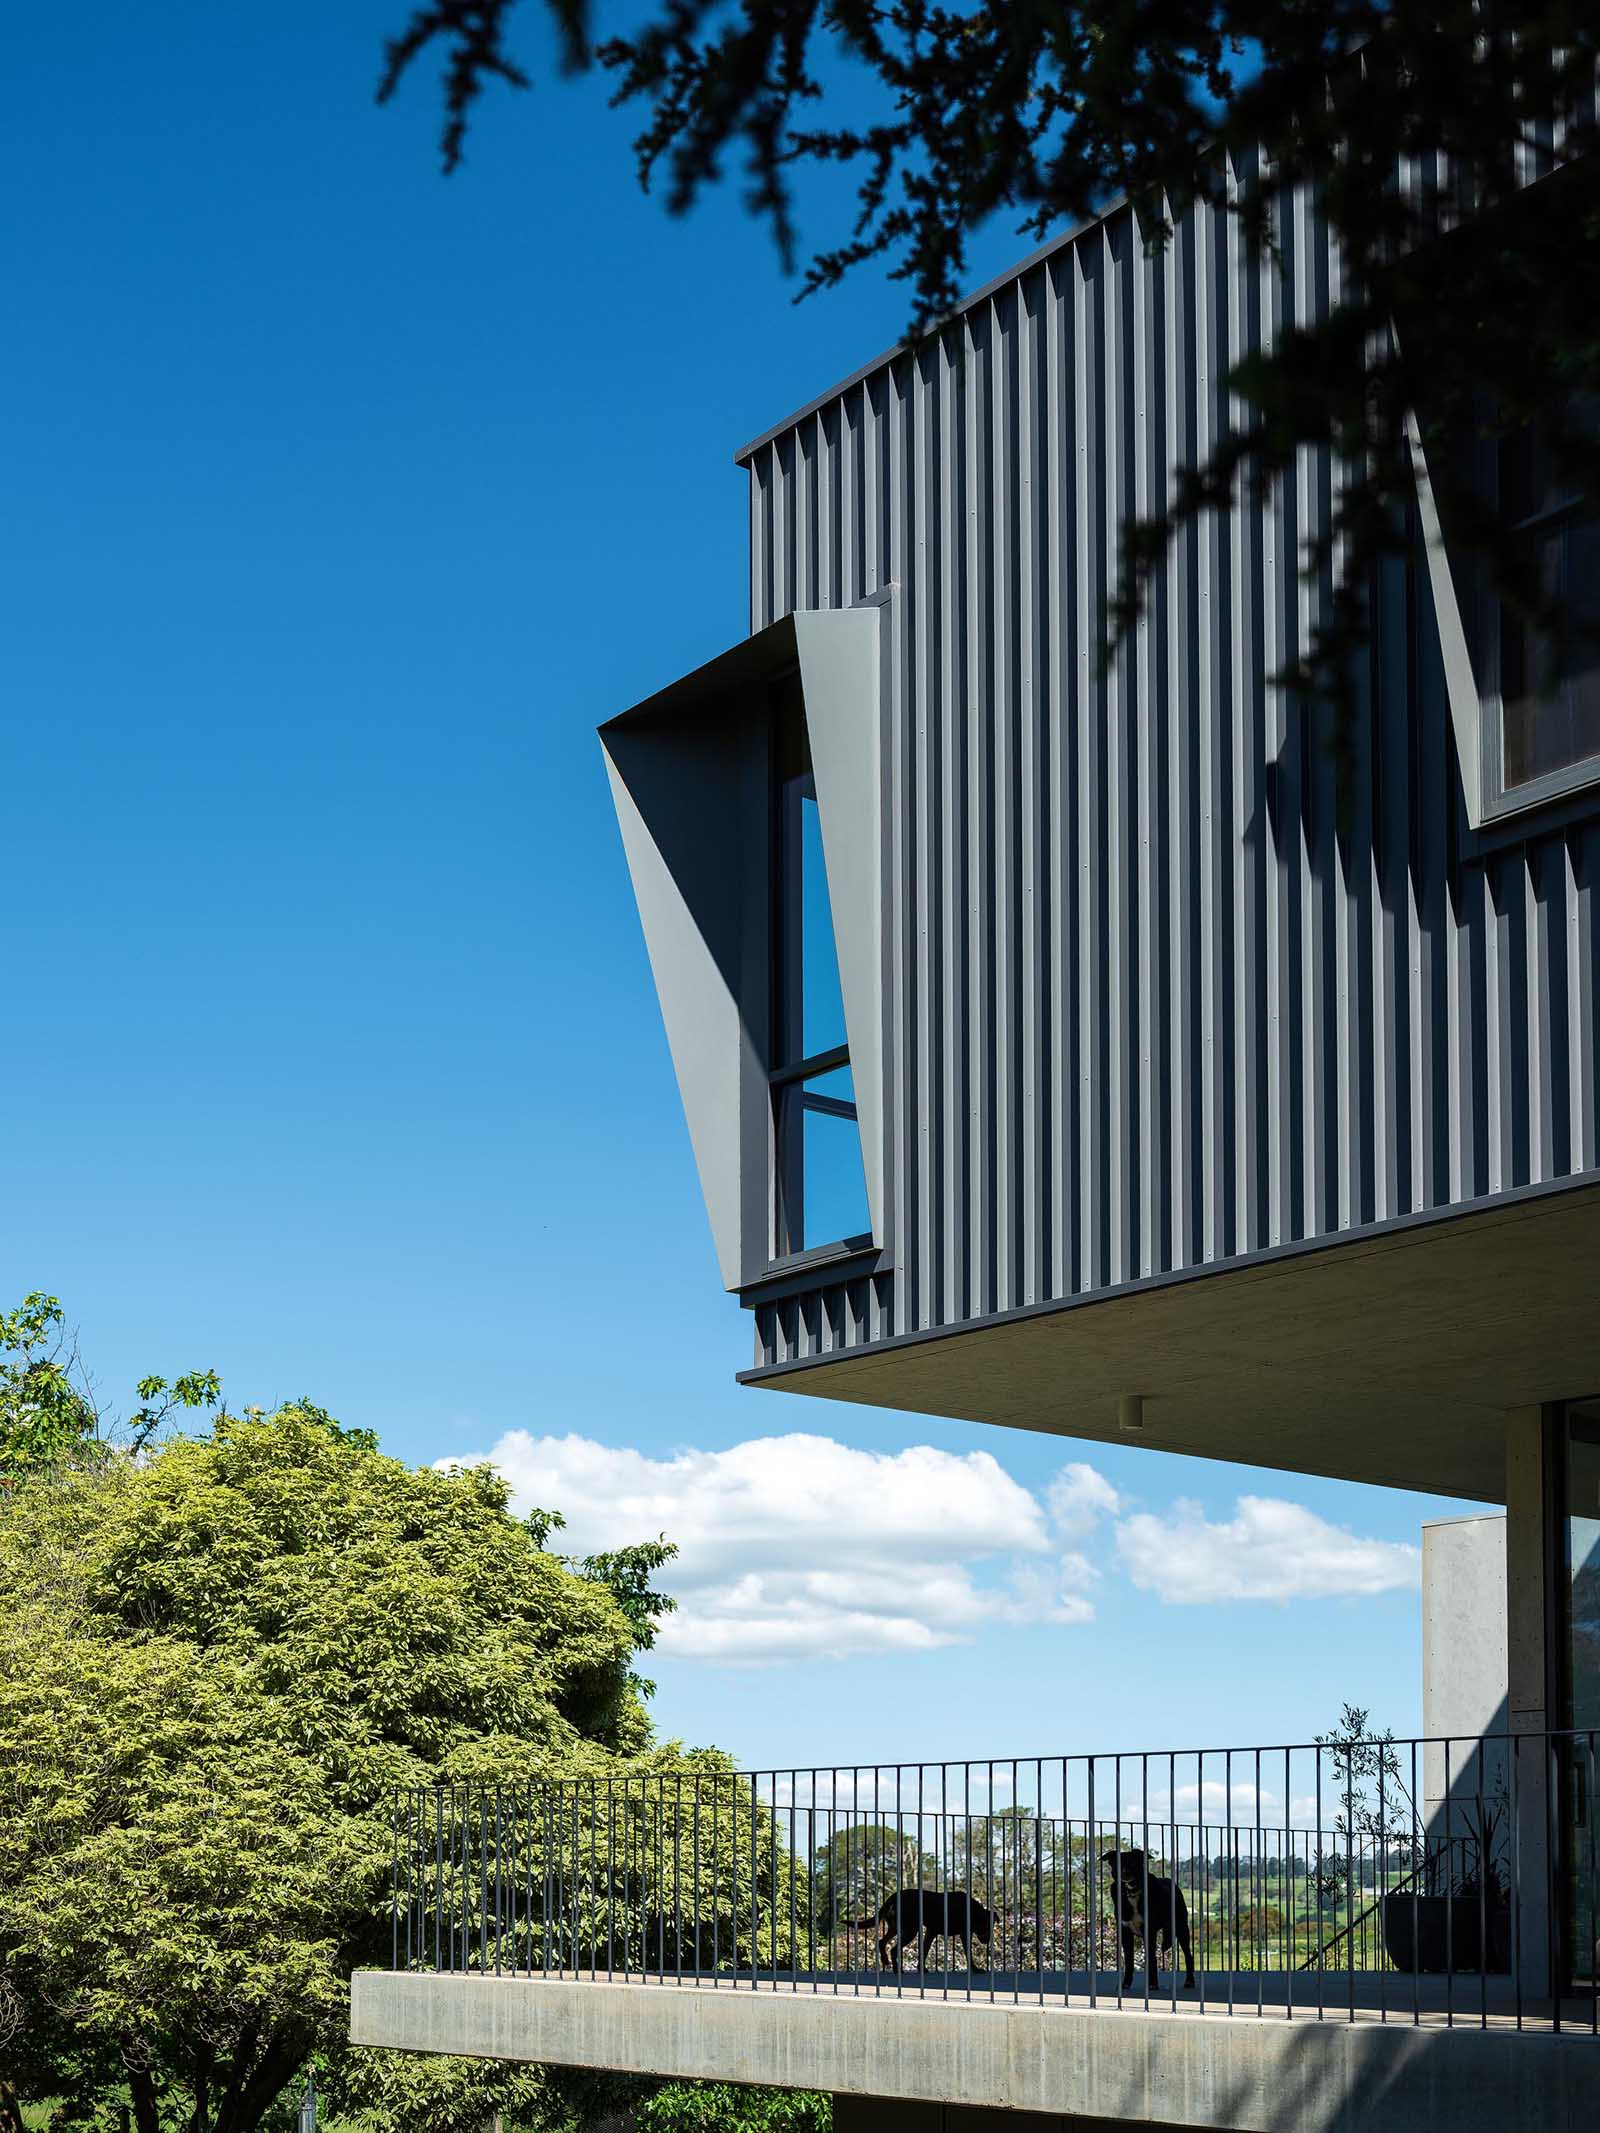 The modern black metal exterior of this home has angled window frames that protrude away from the windows, blocking the sun and offering a shaded interior.